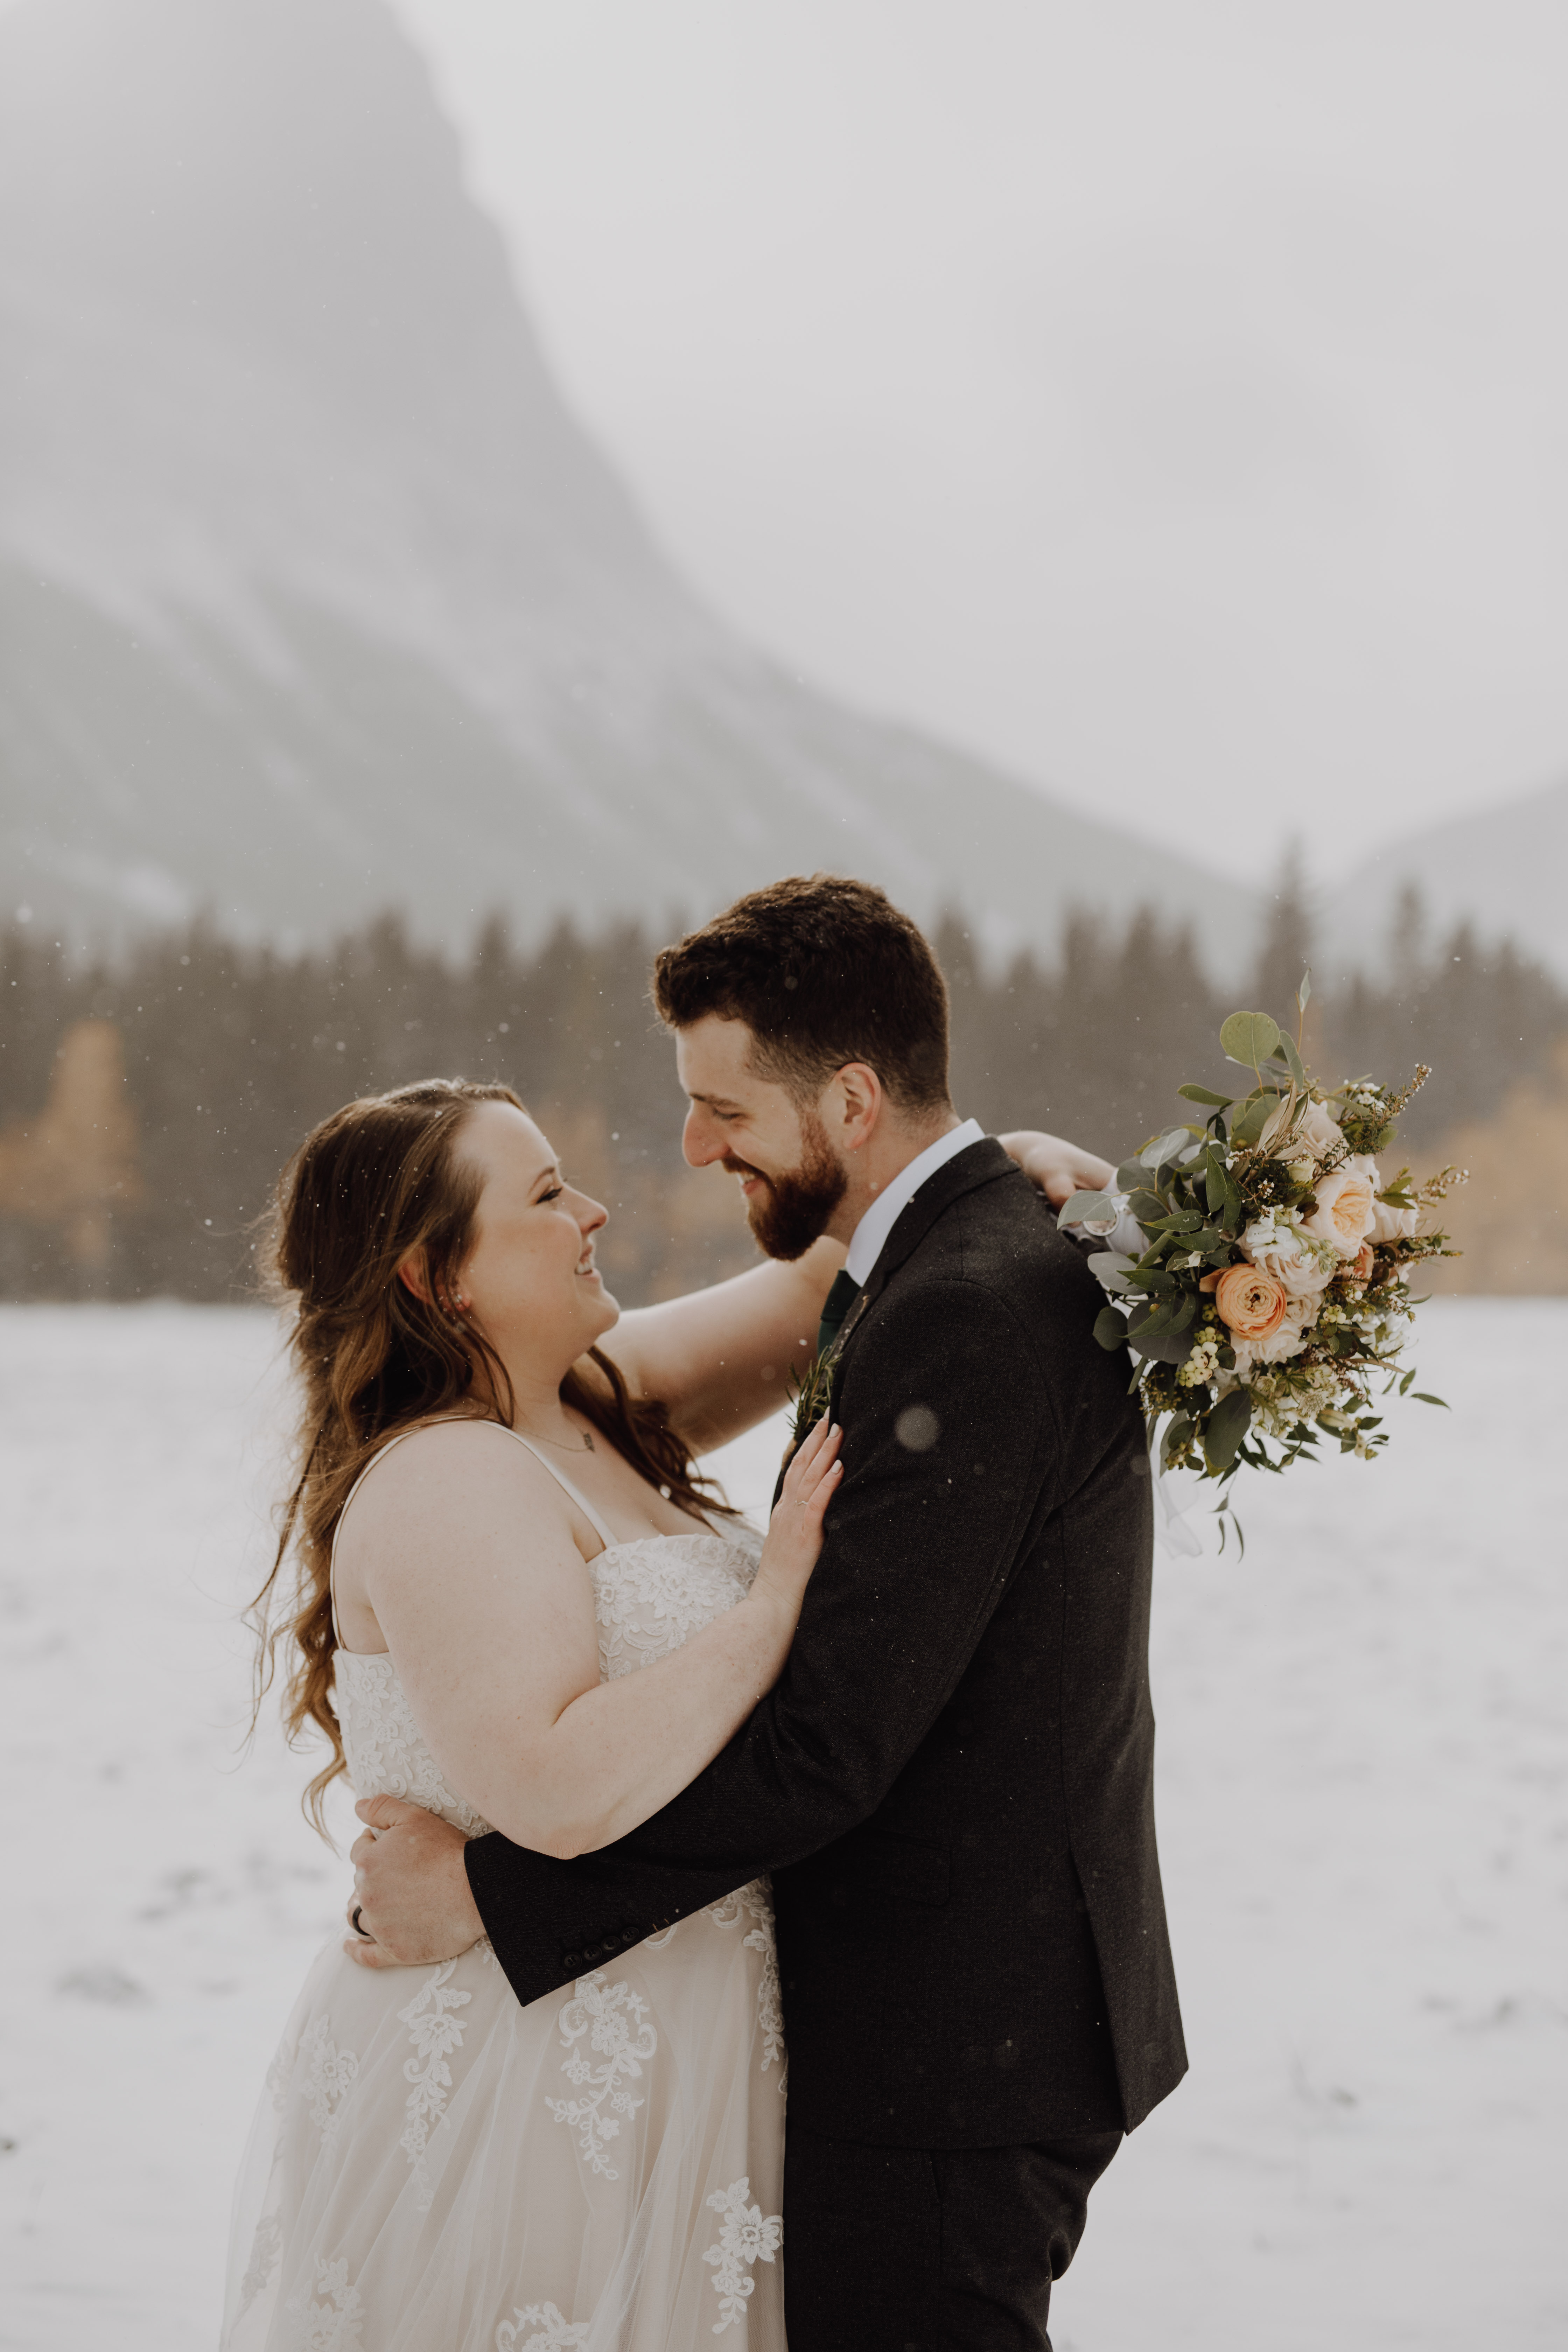 Snowy Mountain wedding